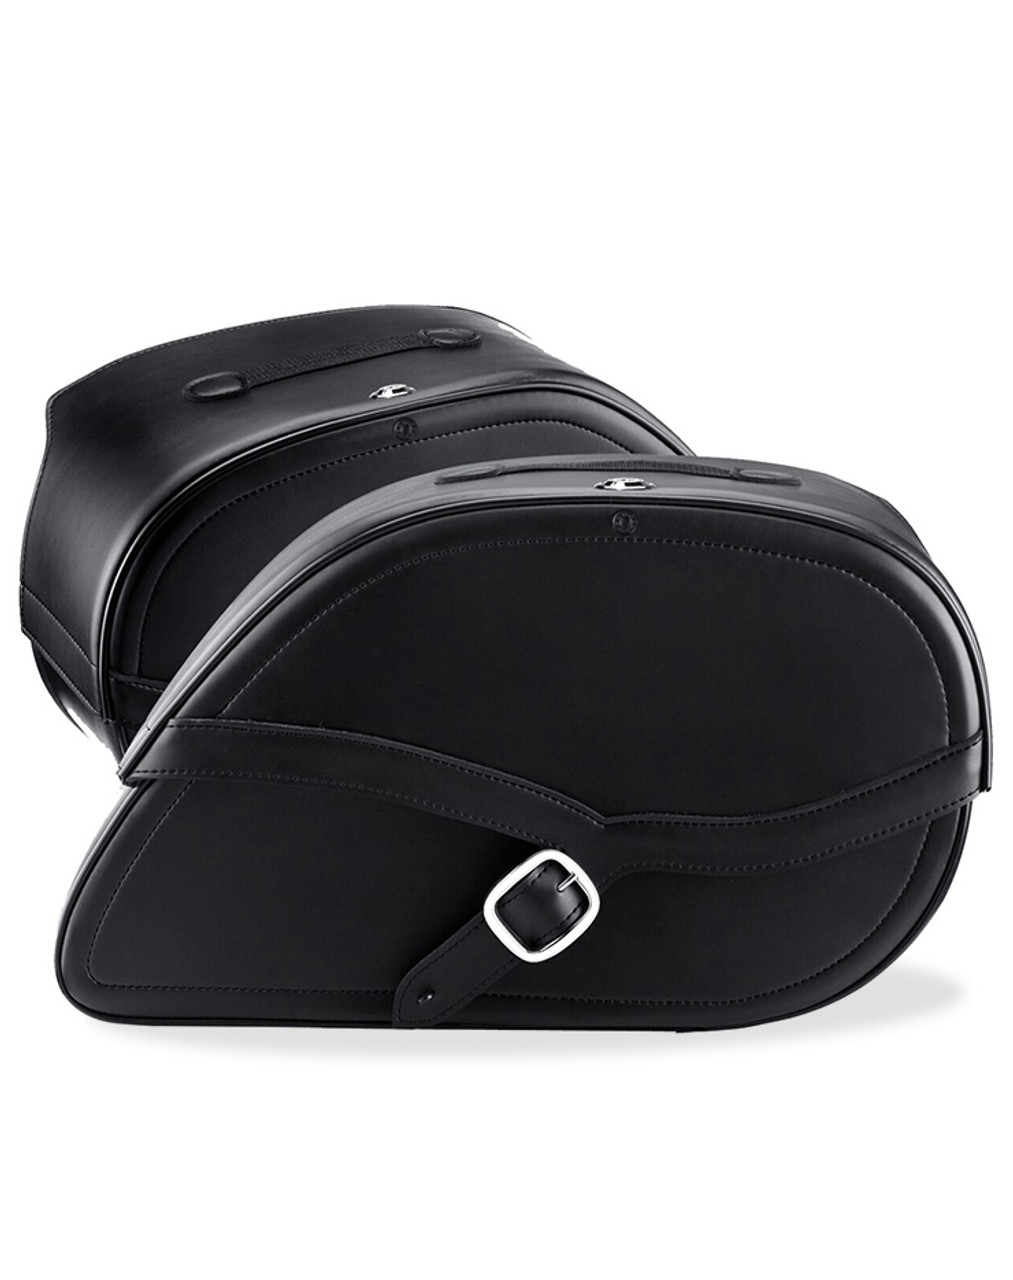 Viking Armor Shock Cutout Large Motorcycle Saddlebags For Harley Dyna Switchback Both Bags View